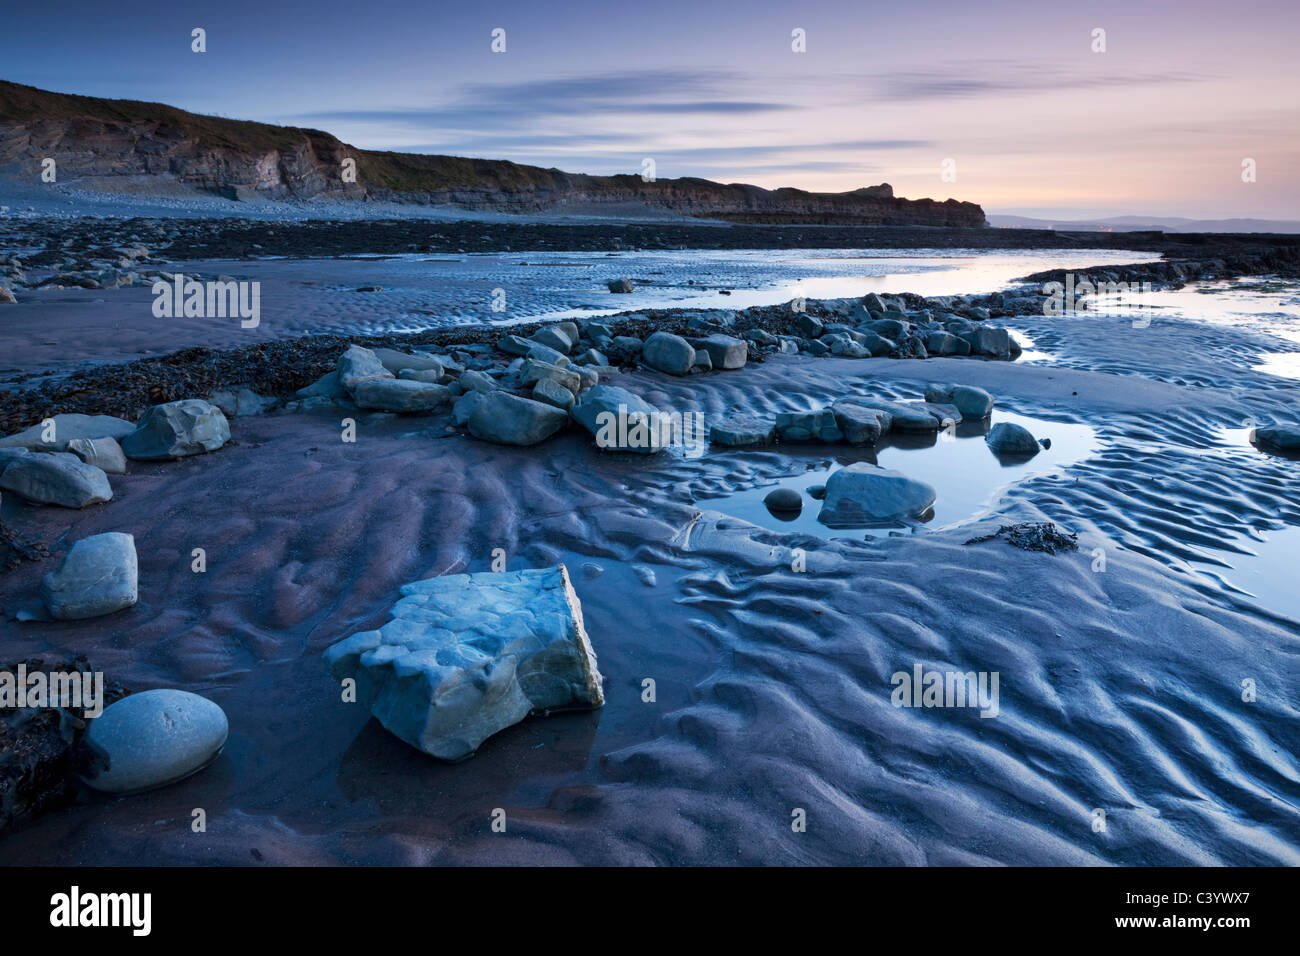 Twilight at Kilve Beach in the Quantocks, Somerset, England. Spring (April) 2011. - Stock Image